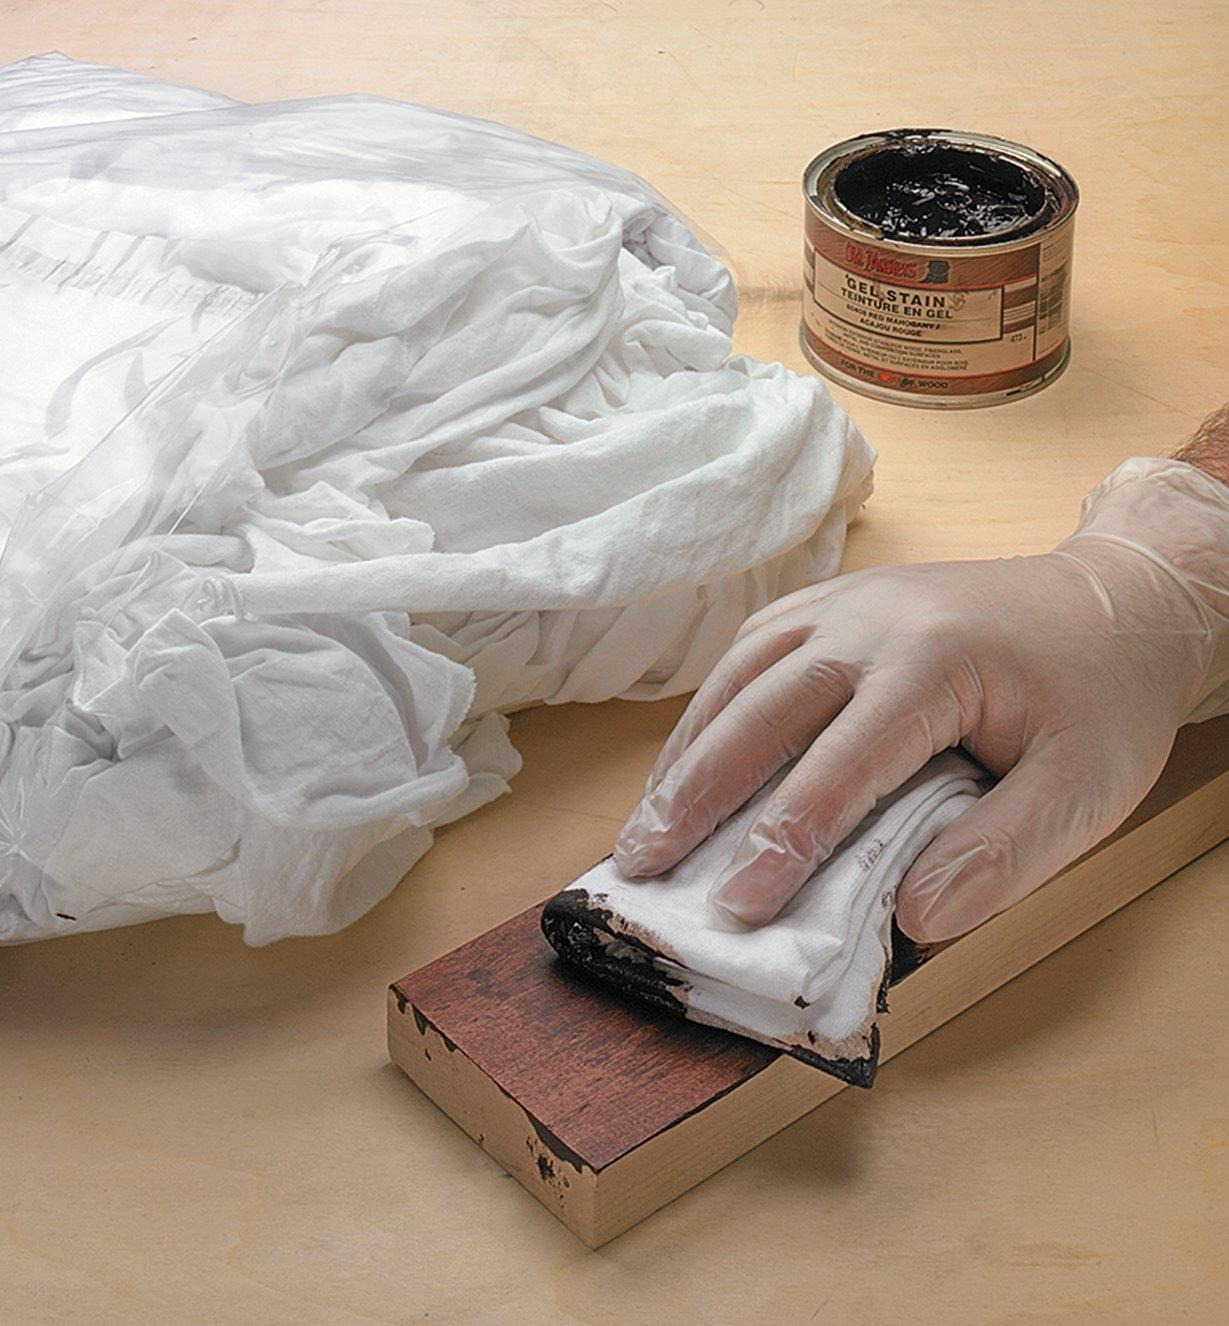 Applying stain to a strip of wood with an absorbent cotton wipe